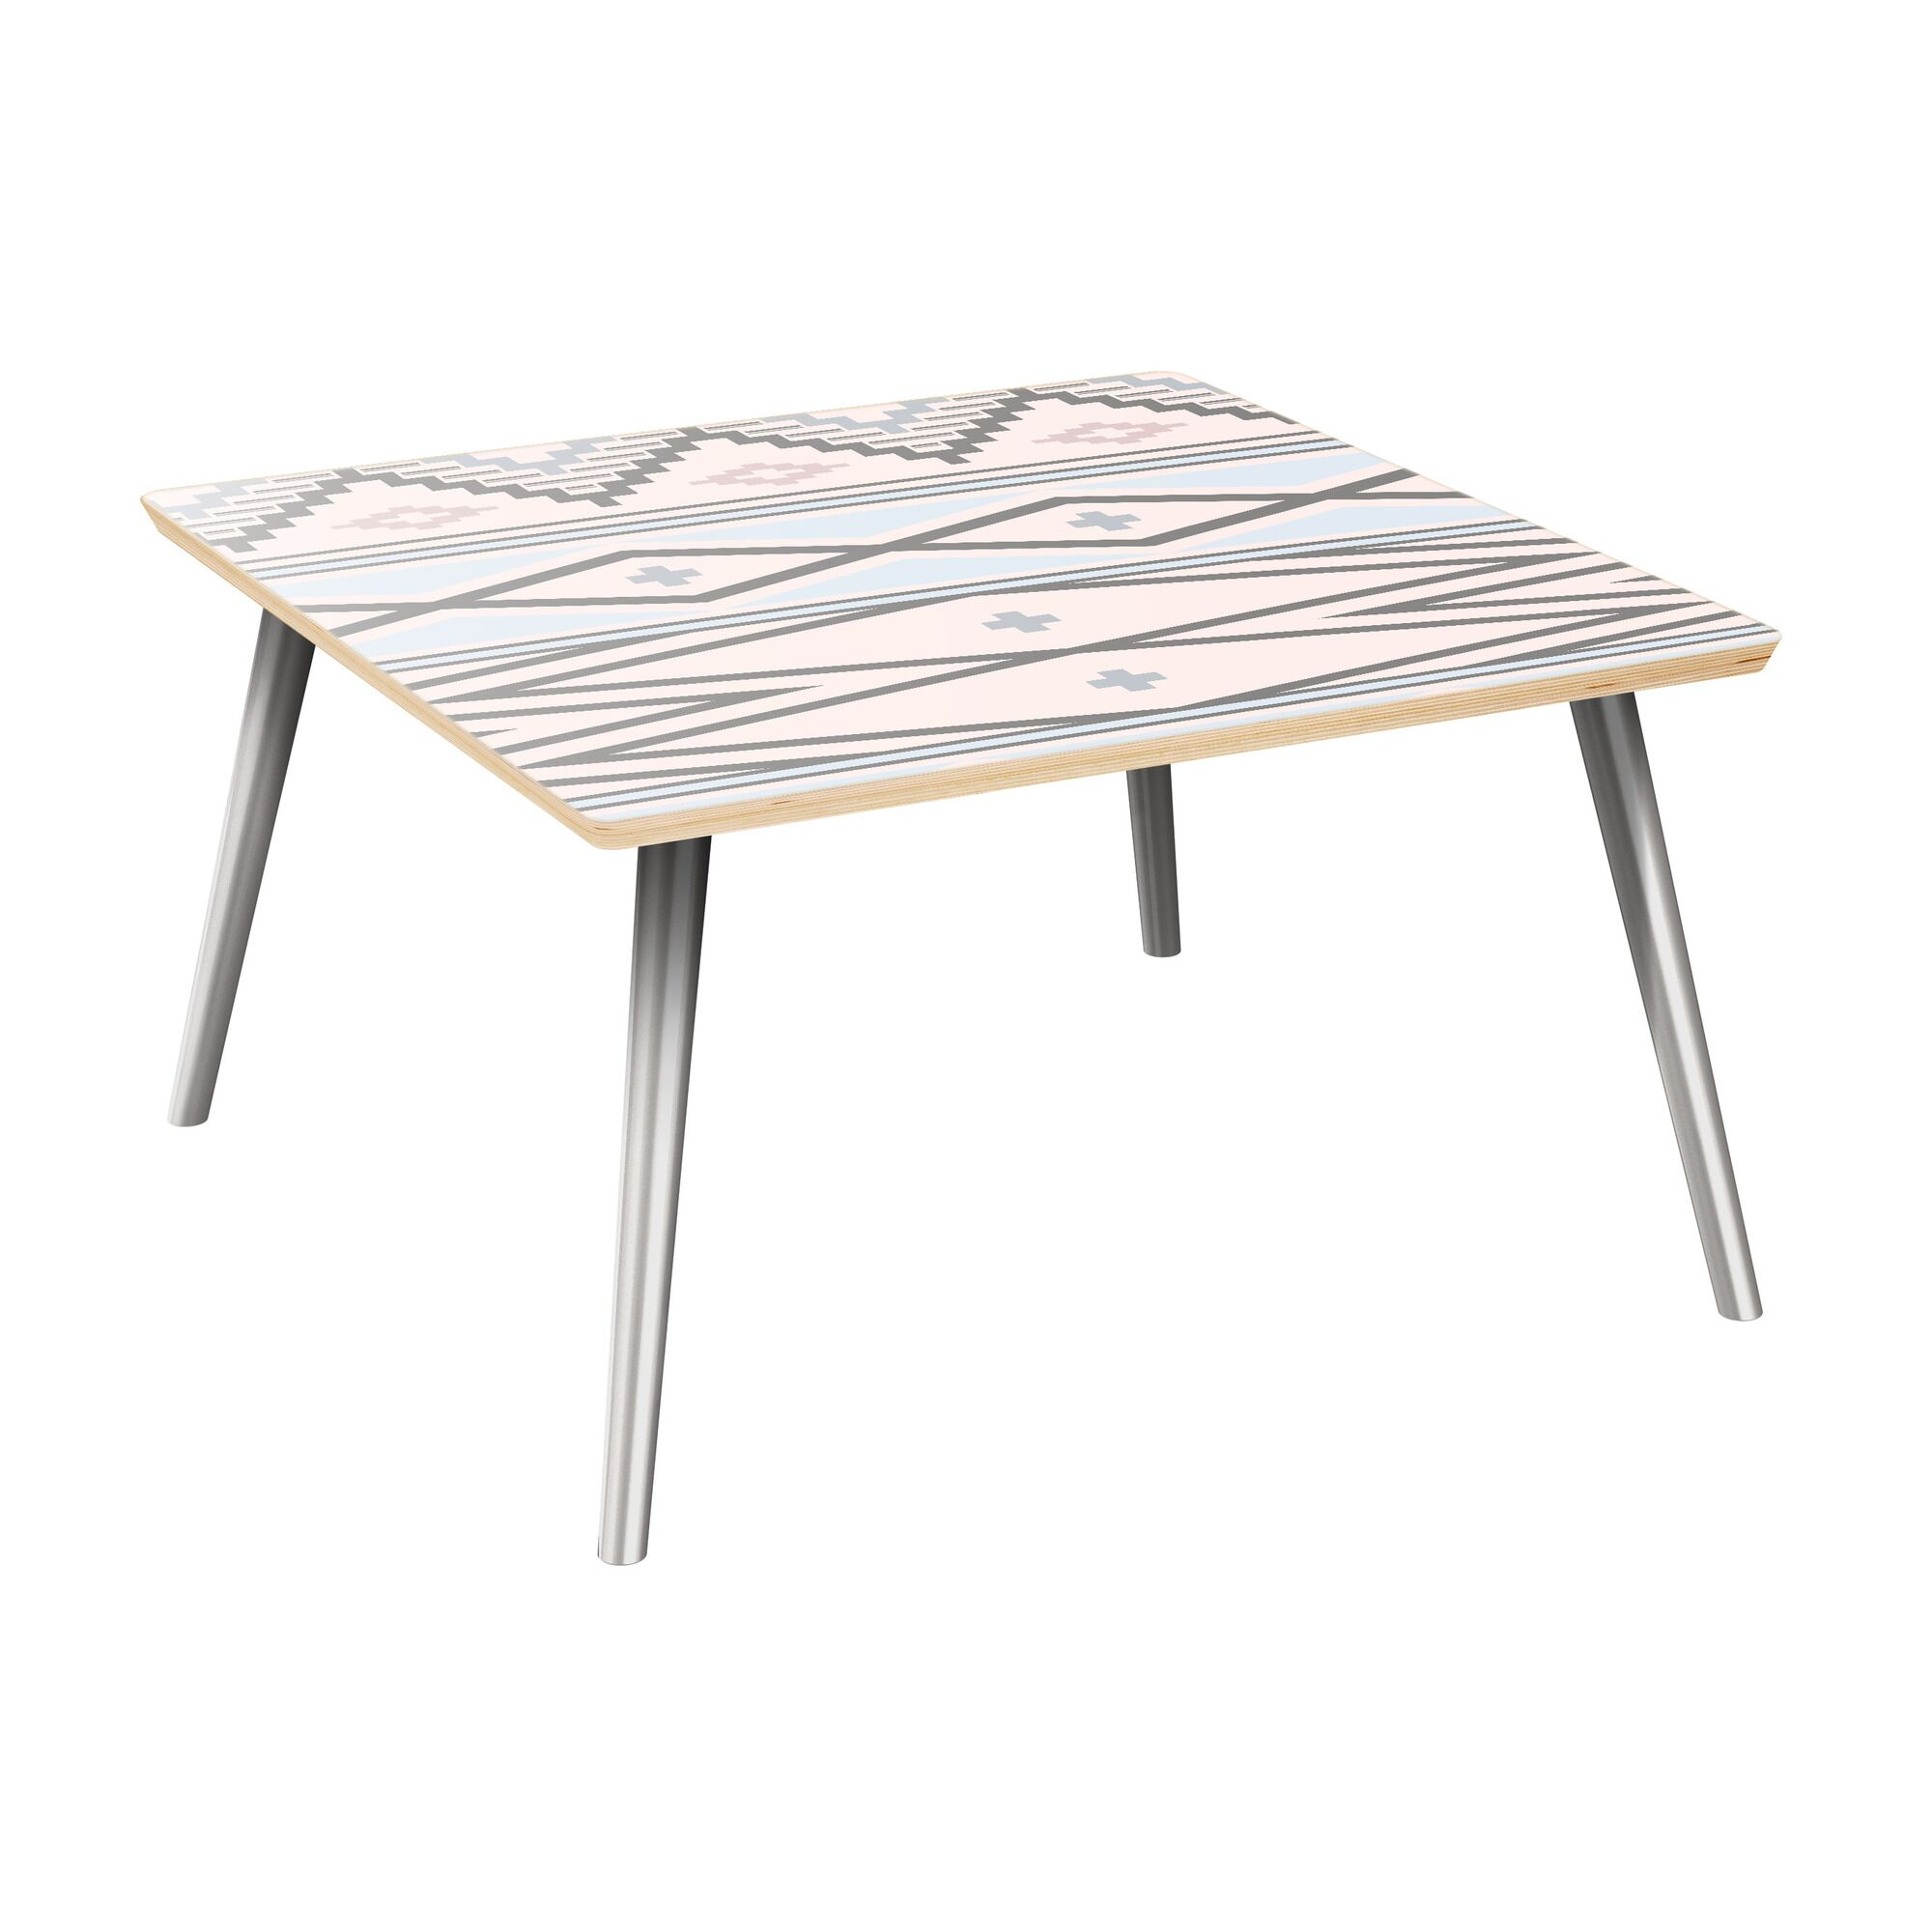 Hollymead Coffee Table Table Top Boarder Color: Natural, Table Base Color: Chrome, Table Top Color: Pink/Blue